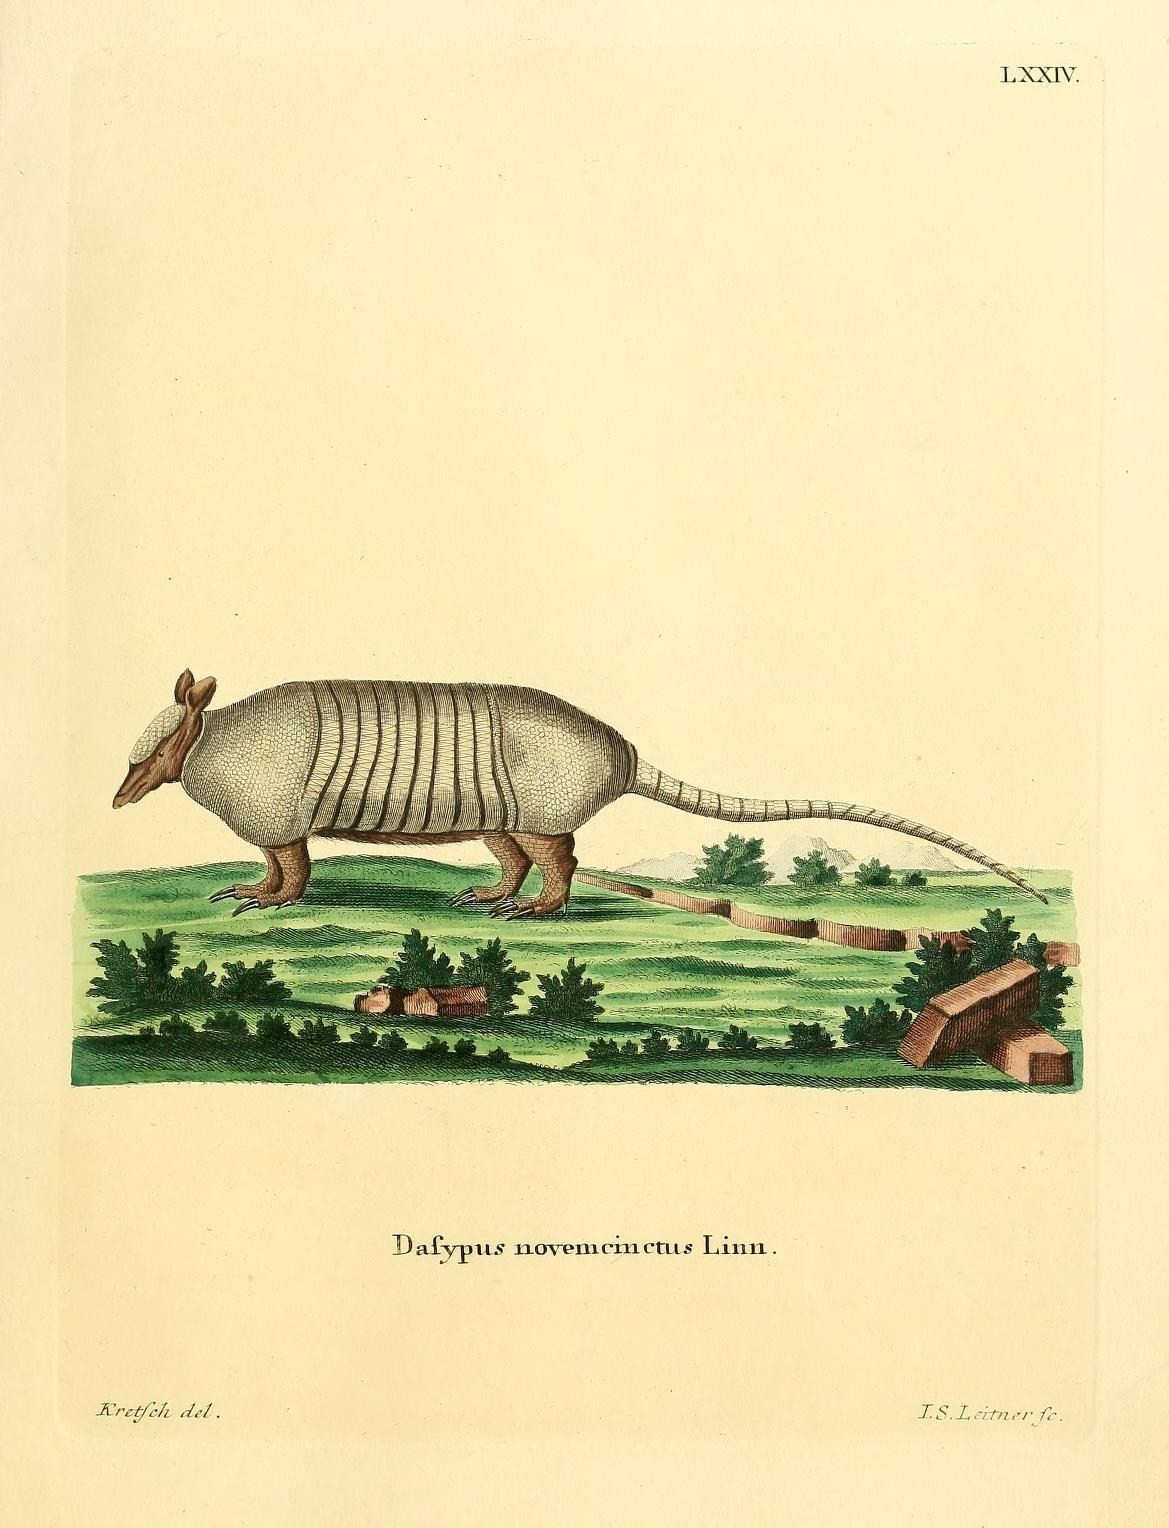 Image of Nine-banded or Greater Long-nosed Armadillo